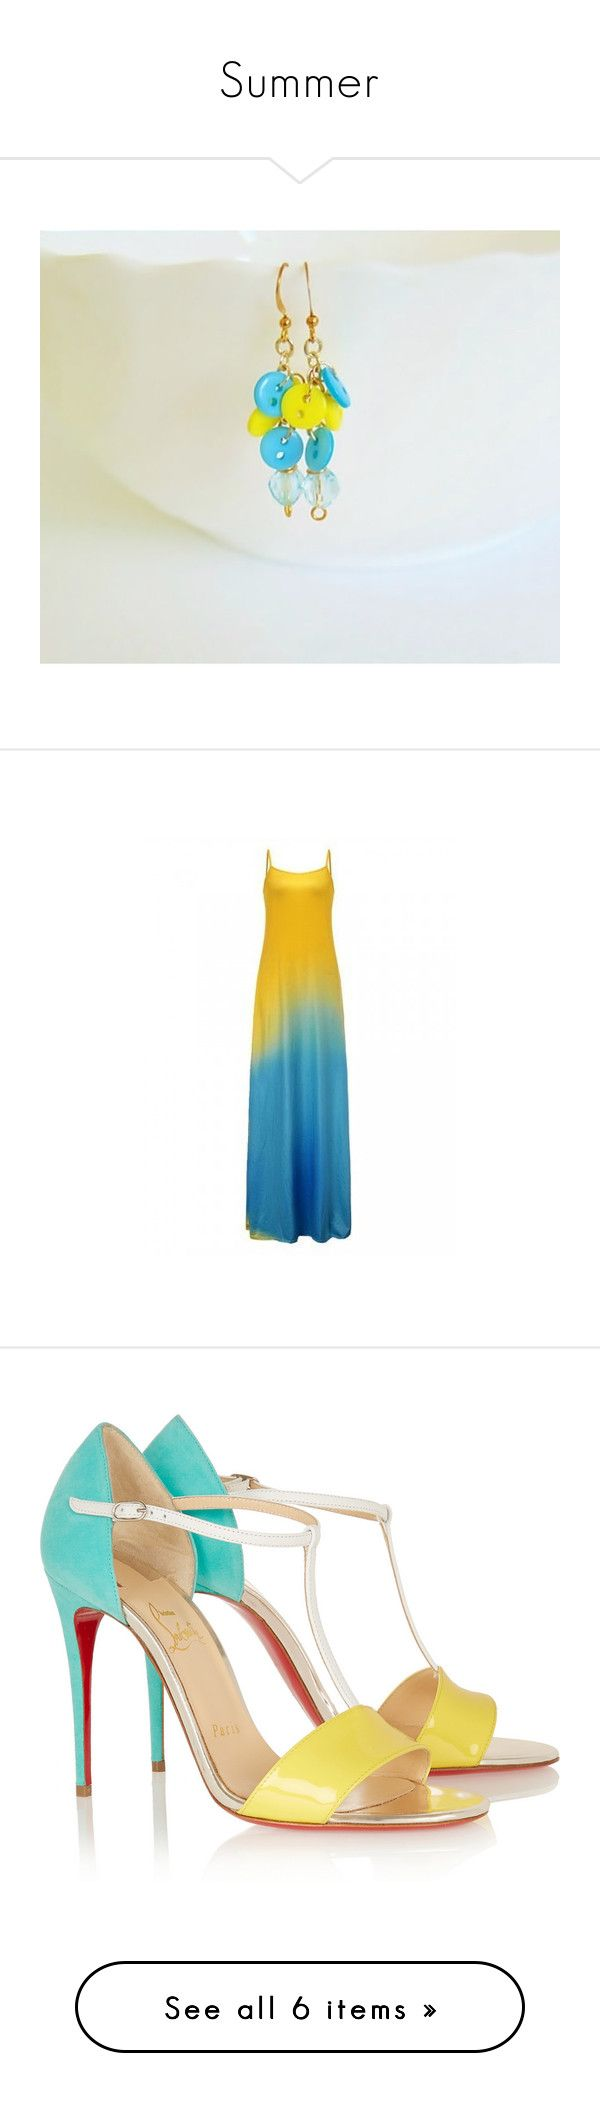 """""""Summer"""" by styledonna on Polyvore featuring jewelry, earrings, dresses, maxi dresses, yellow, evening dresses, maxi cocktail dress, blue cocktail dress, yellow summer dress i yellow cocktail dress"""